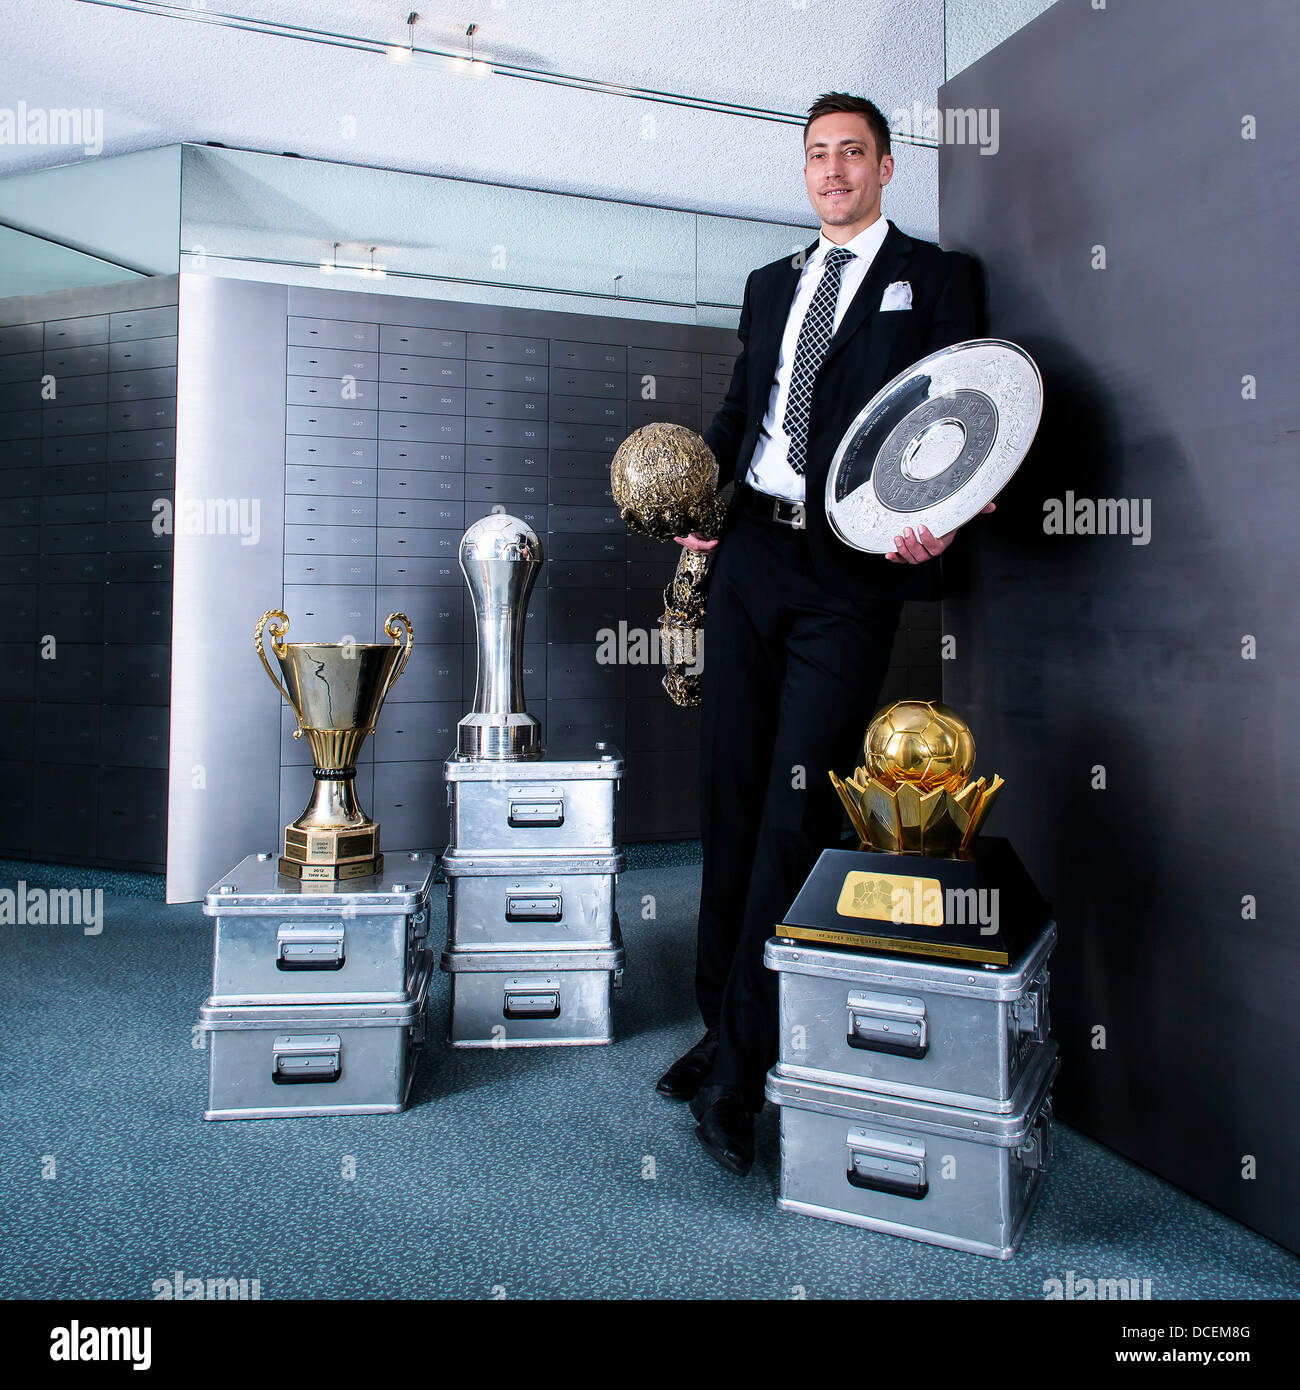 Sweden's Marcus Ahlm poses with his trophies that he has won over his ten year carreer (2003-2013) with the - Stock Image